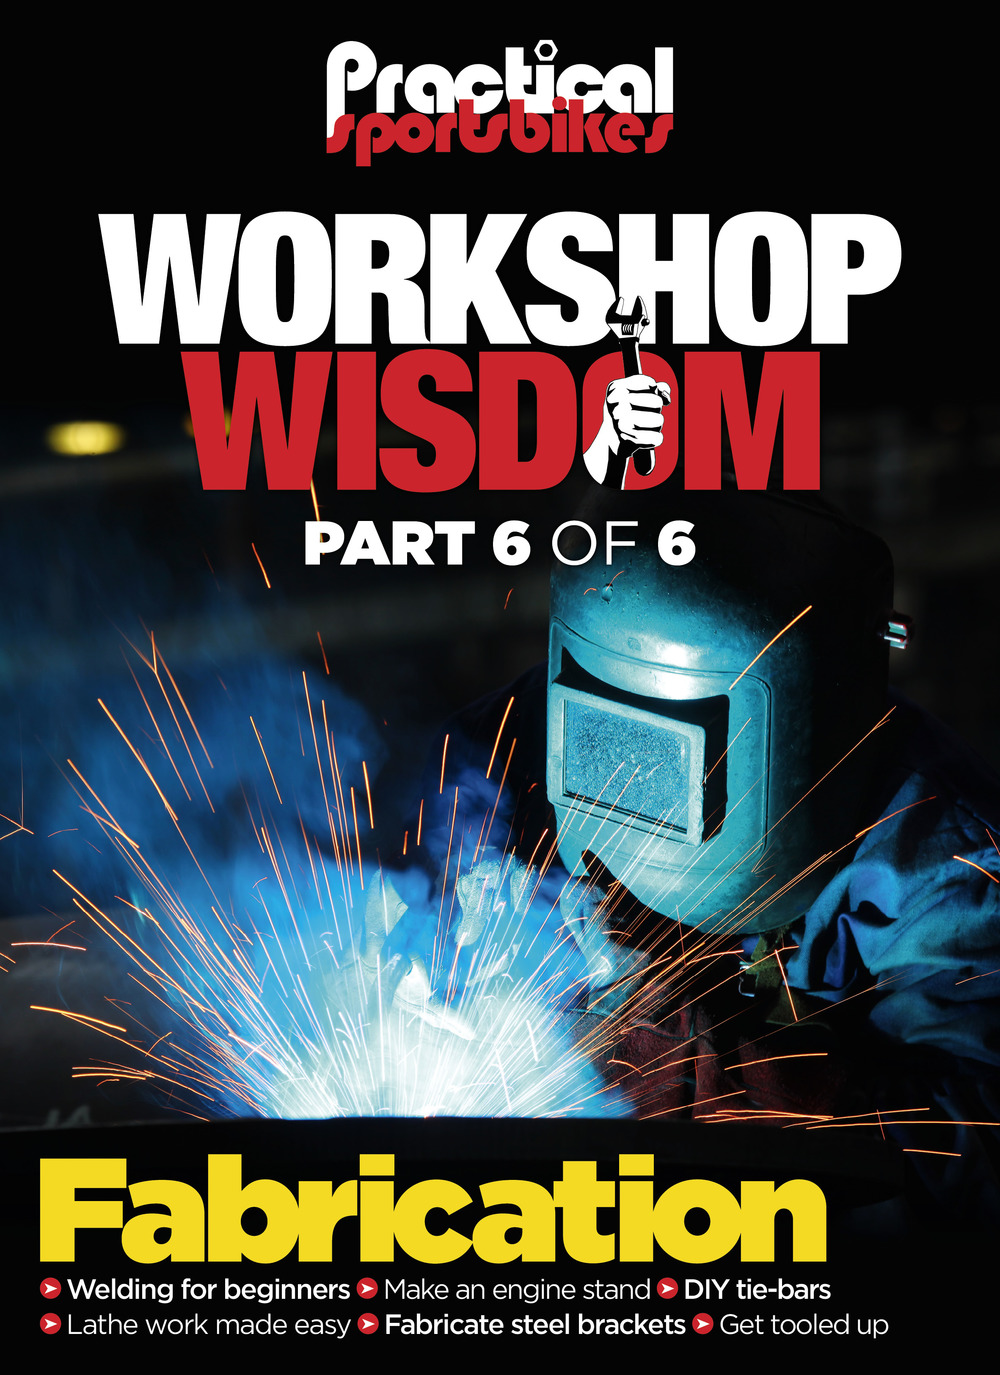 Workshop Wisdom 6: Fabrication